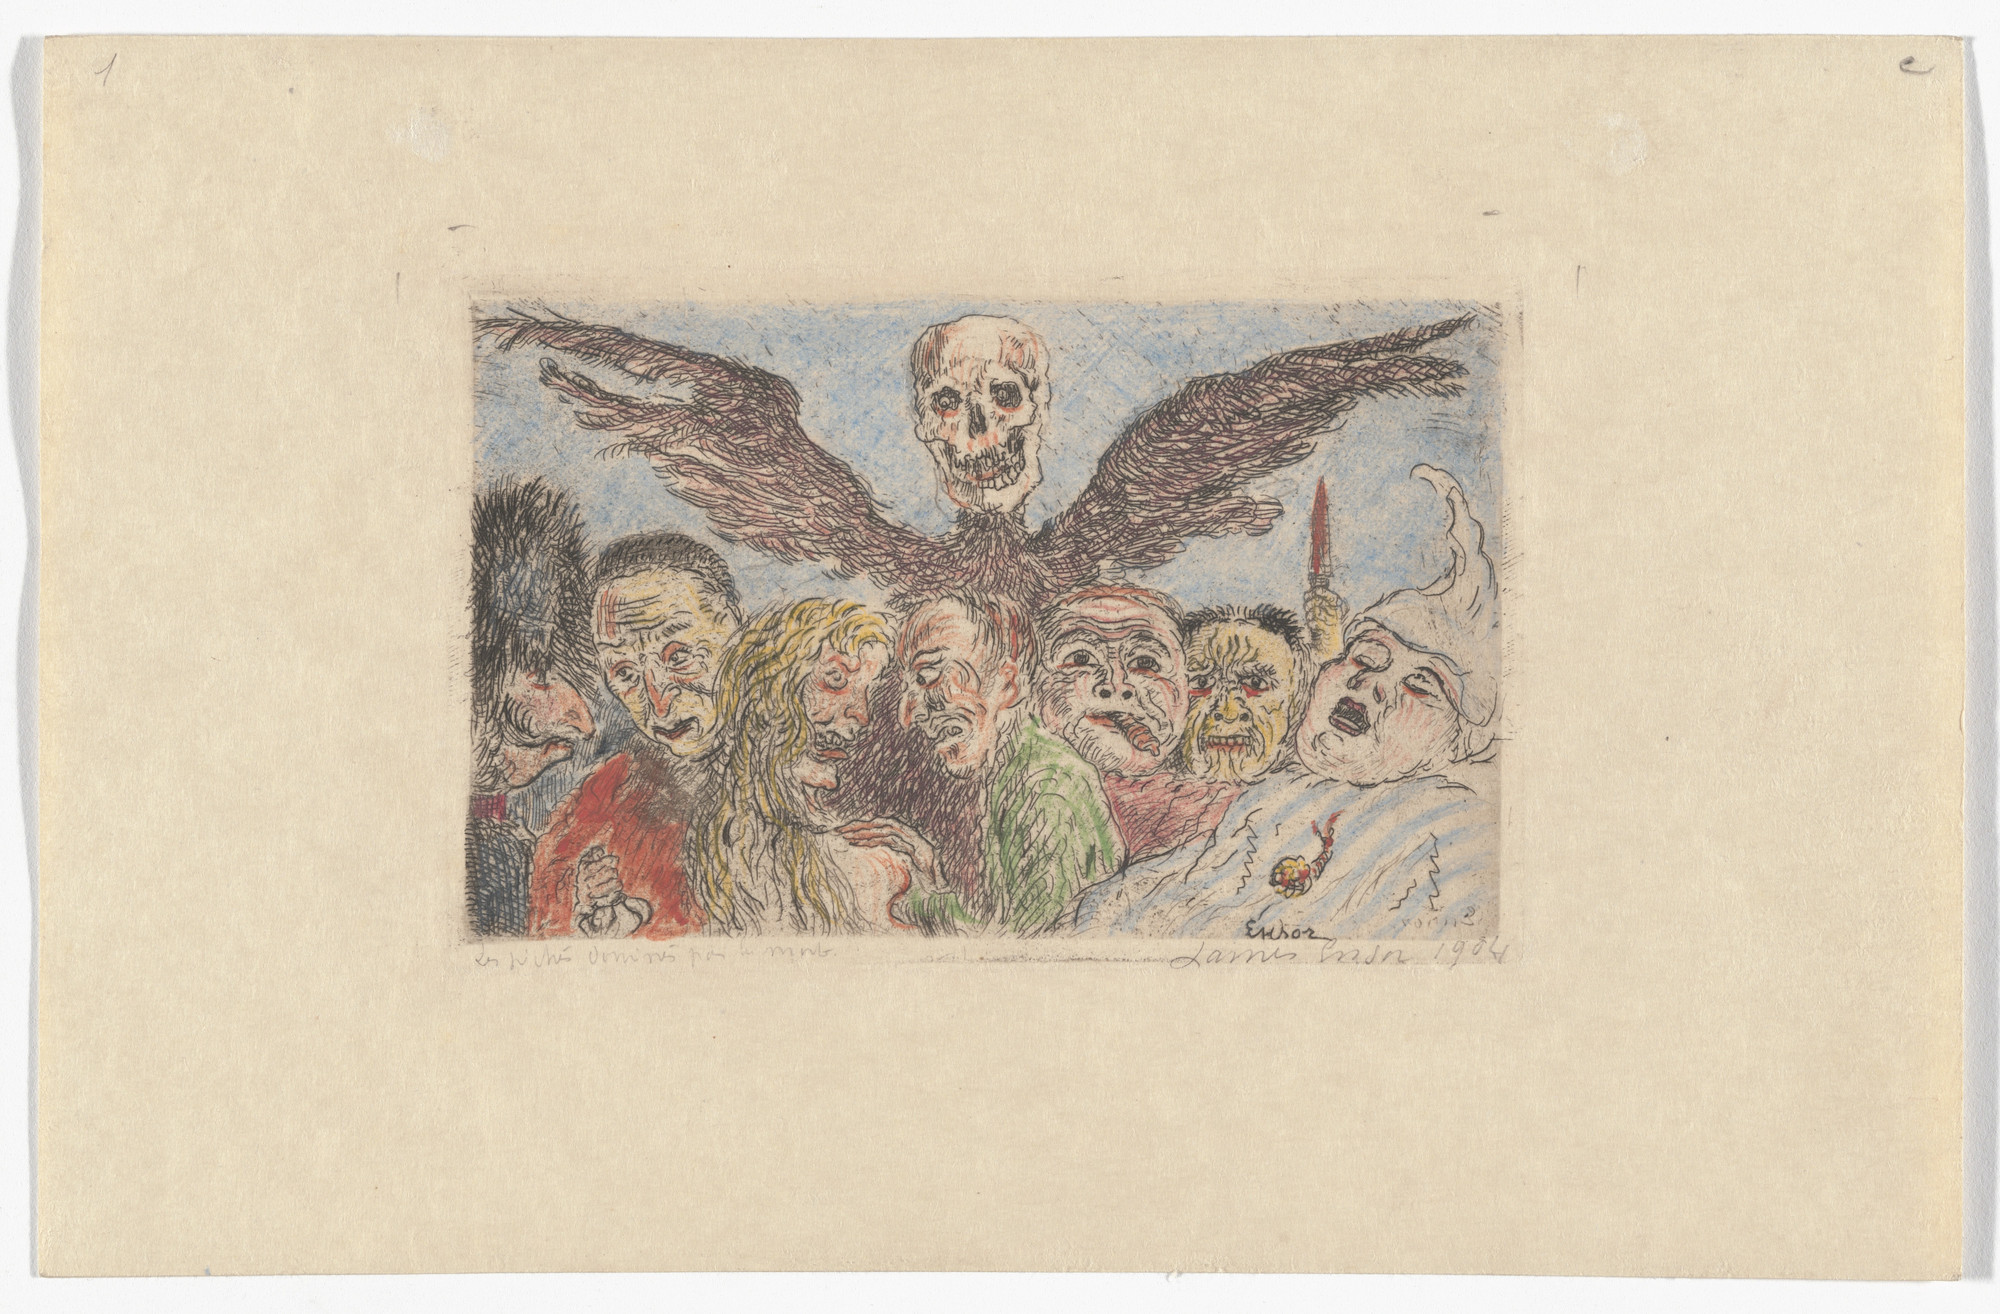 James Ensor. The Deadly Sins Dominated by Death (Les Péchés capitaux dominés par la mort) from The Deadly Sins (Les Péchés capitaux). 1904